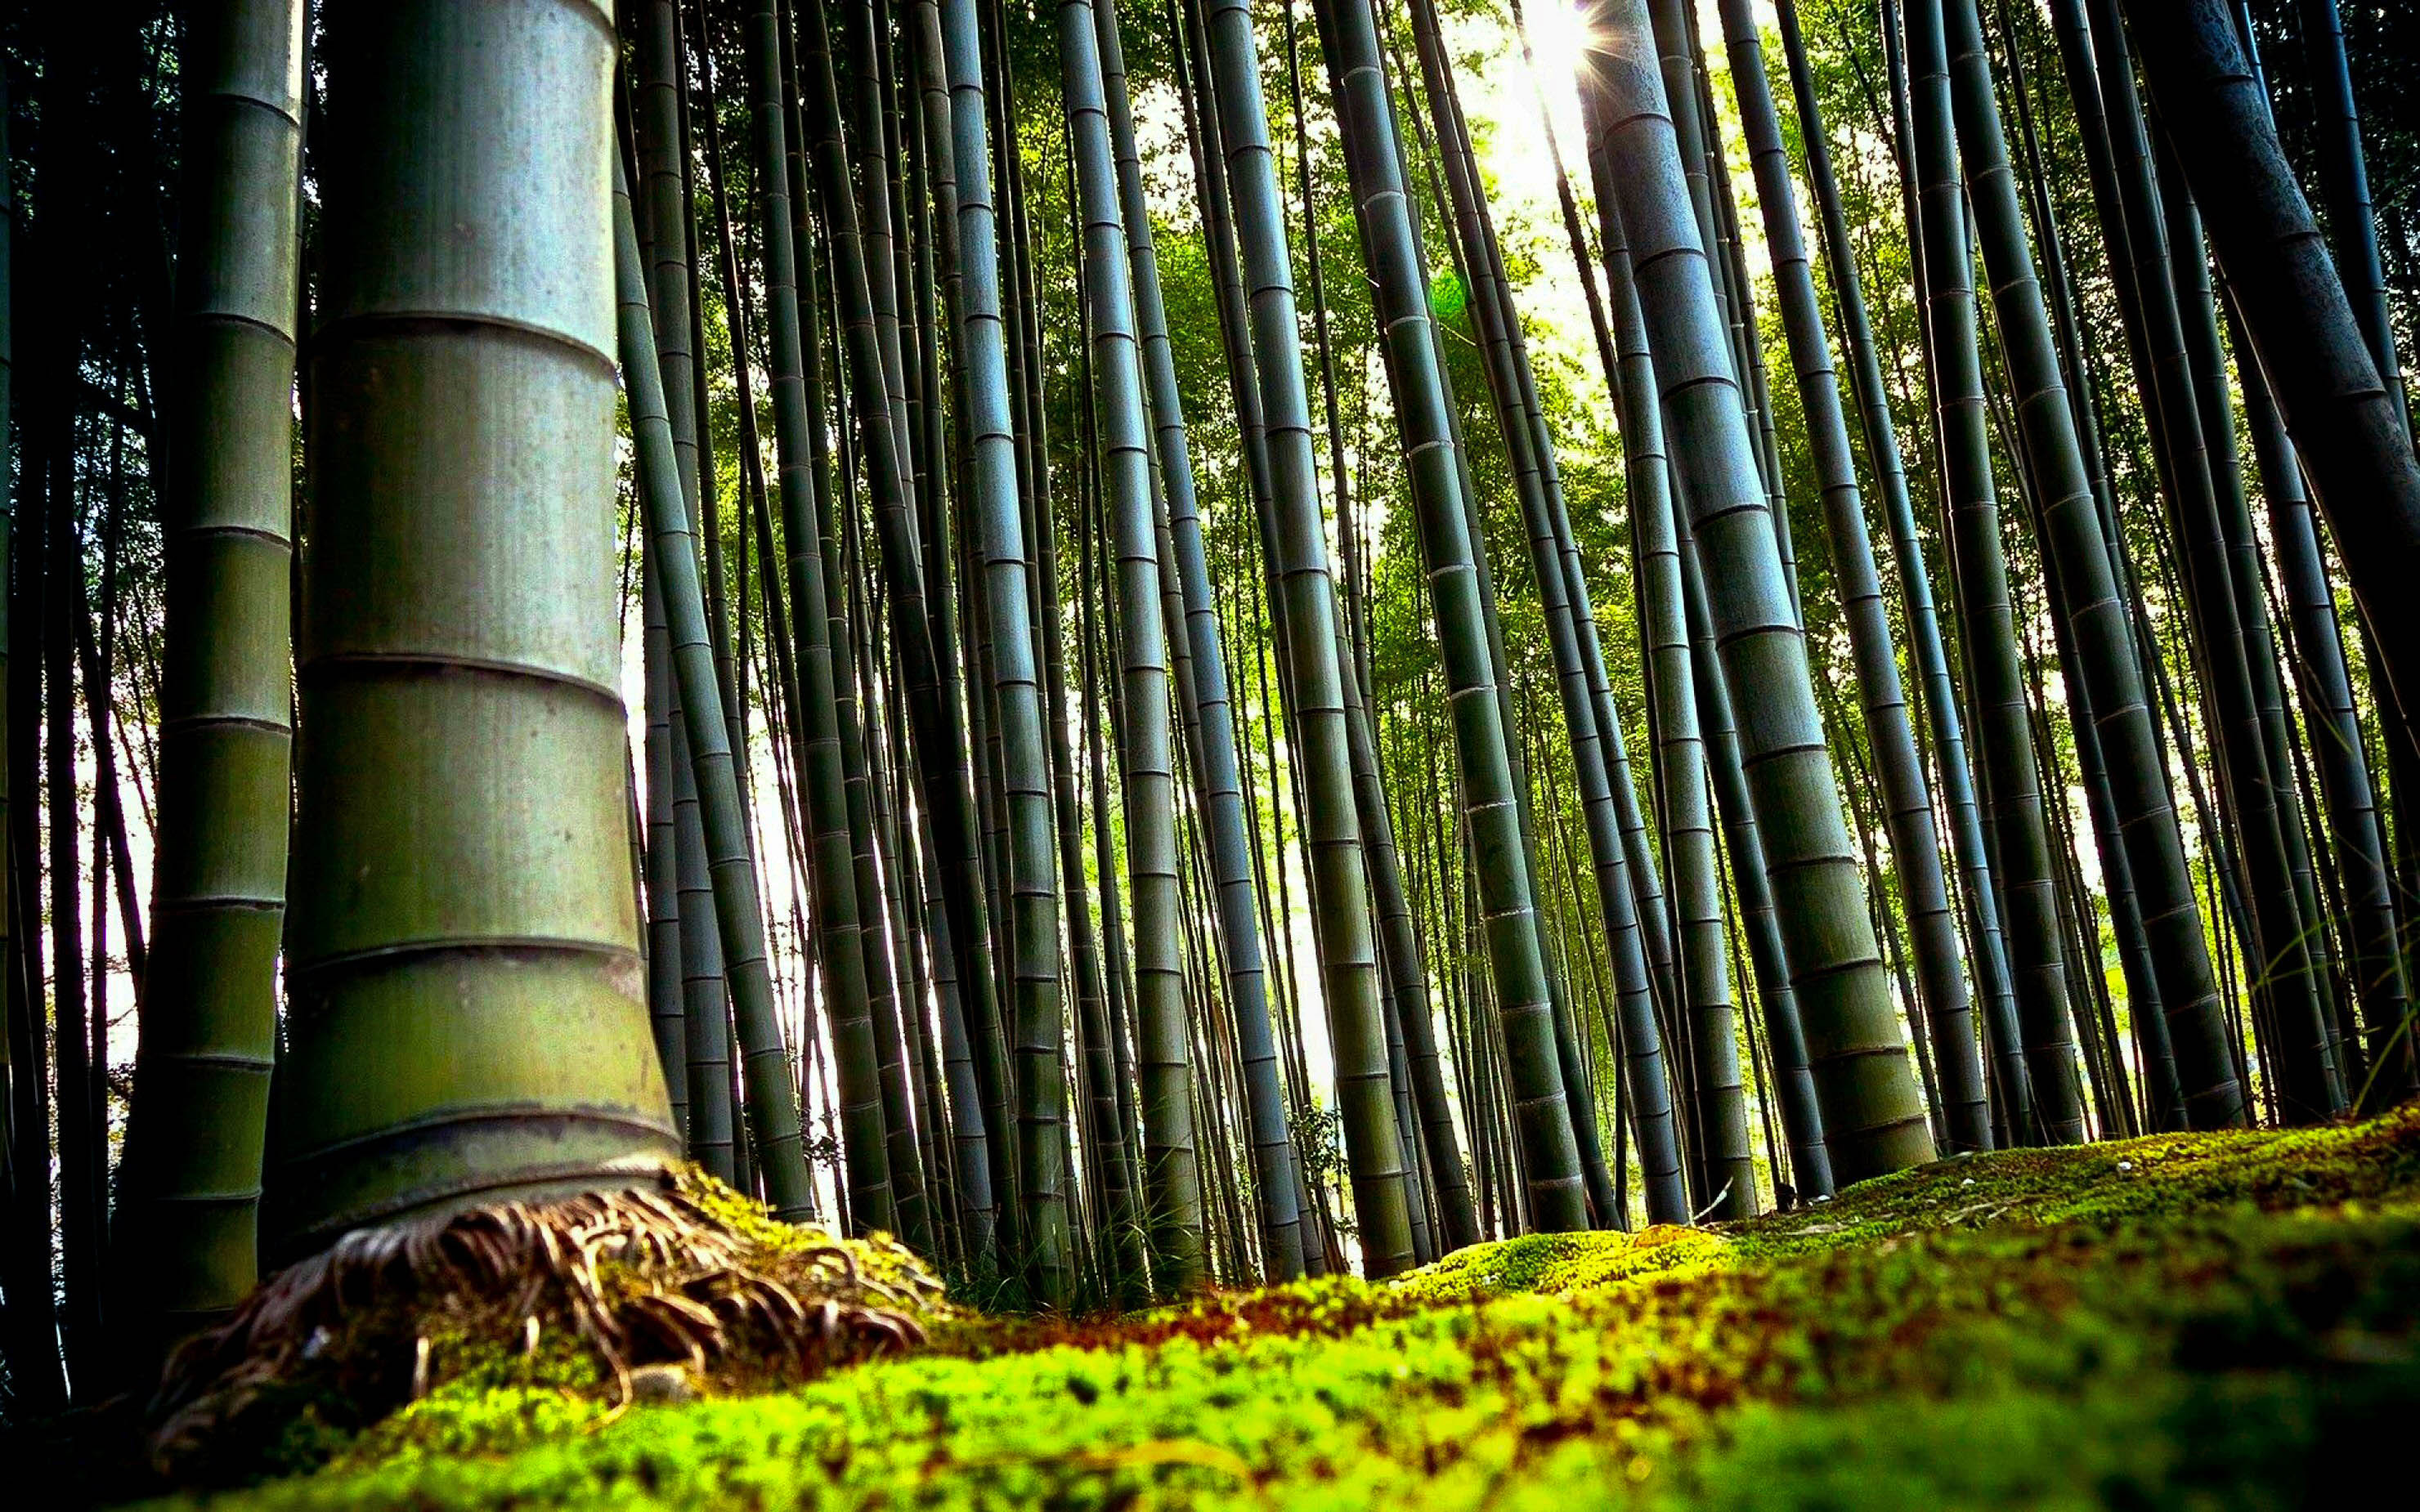 Bamboo New HD Wallpapers 2015 (High Quality) - All HD ...